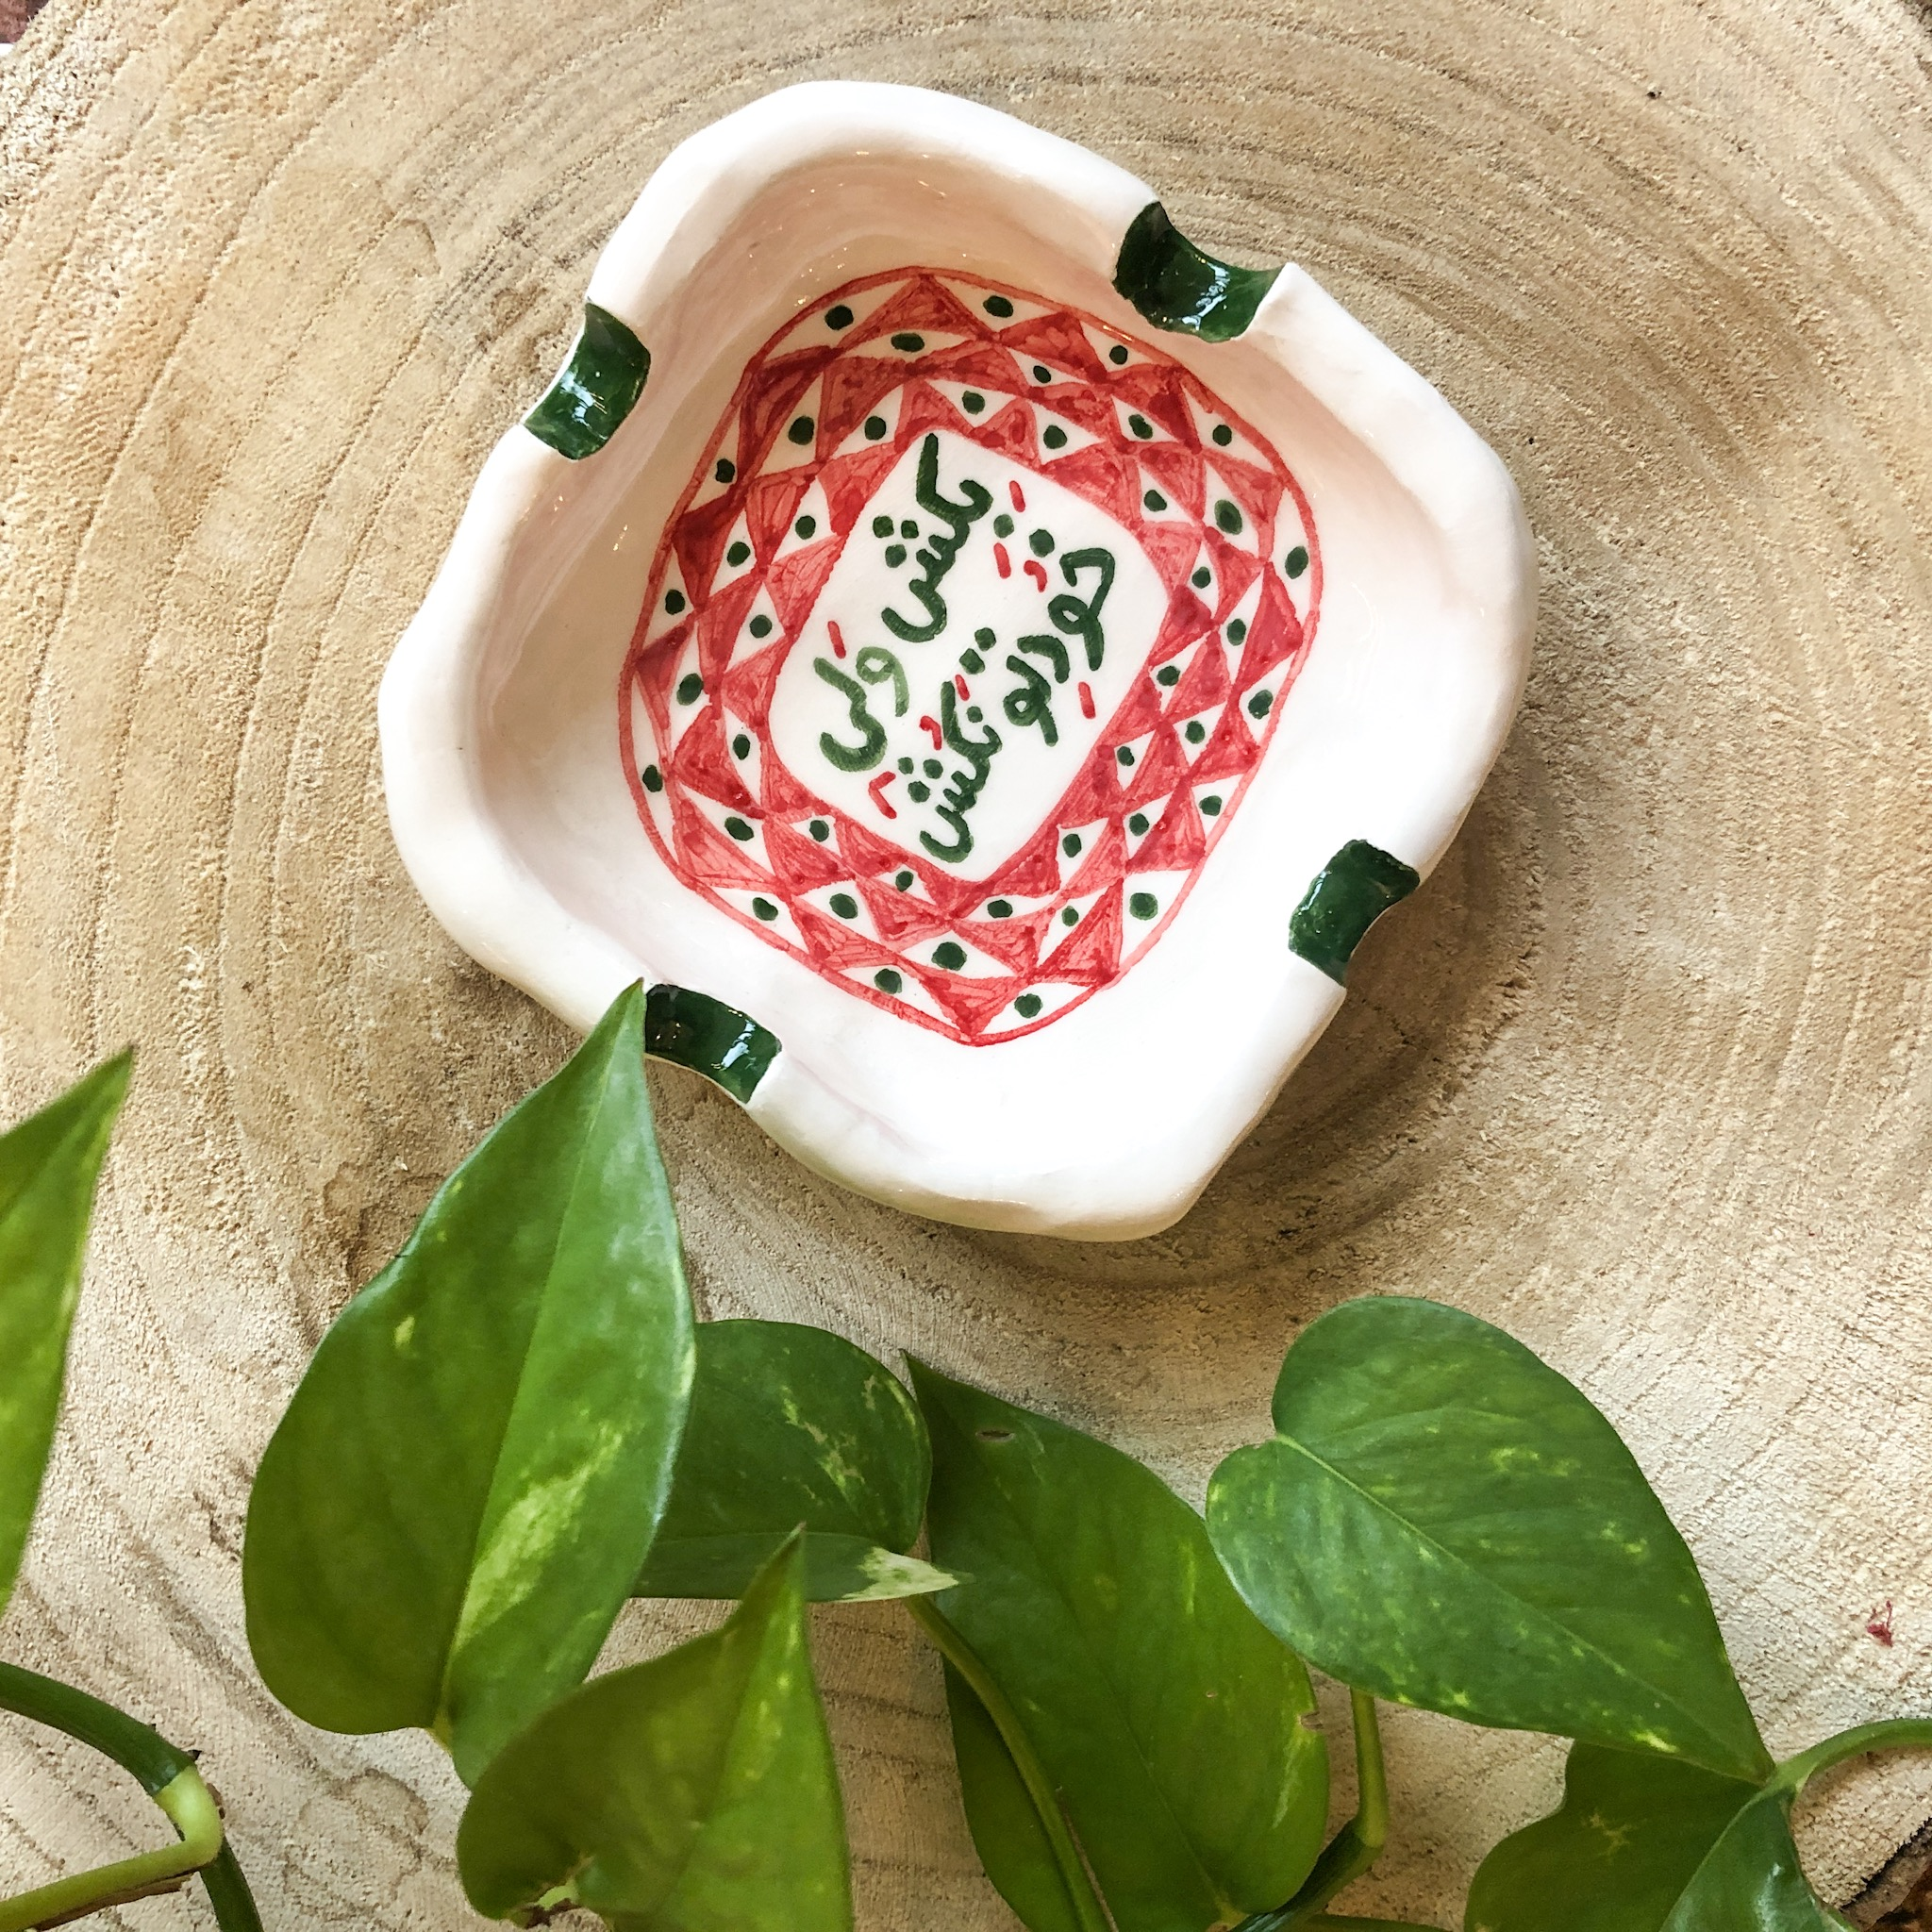 Handmade ceramic ashtray by NamArtcraft - bekesh vali nakosh